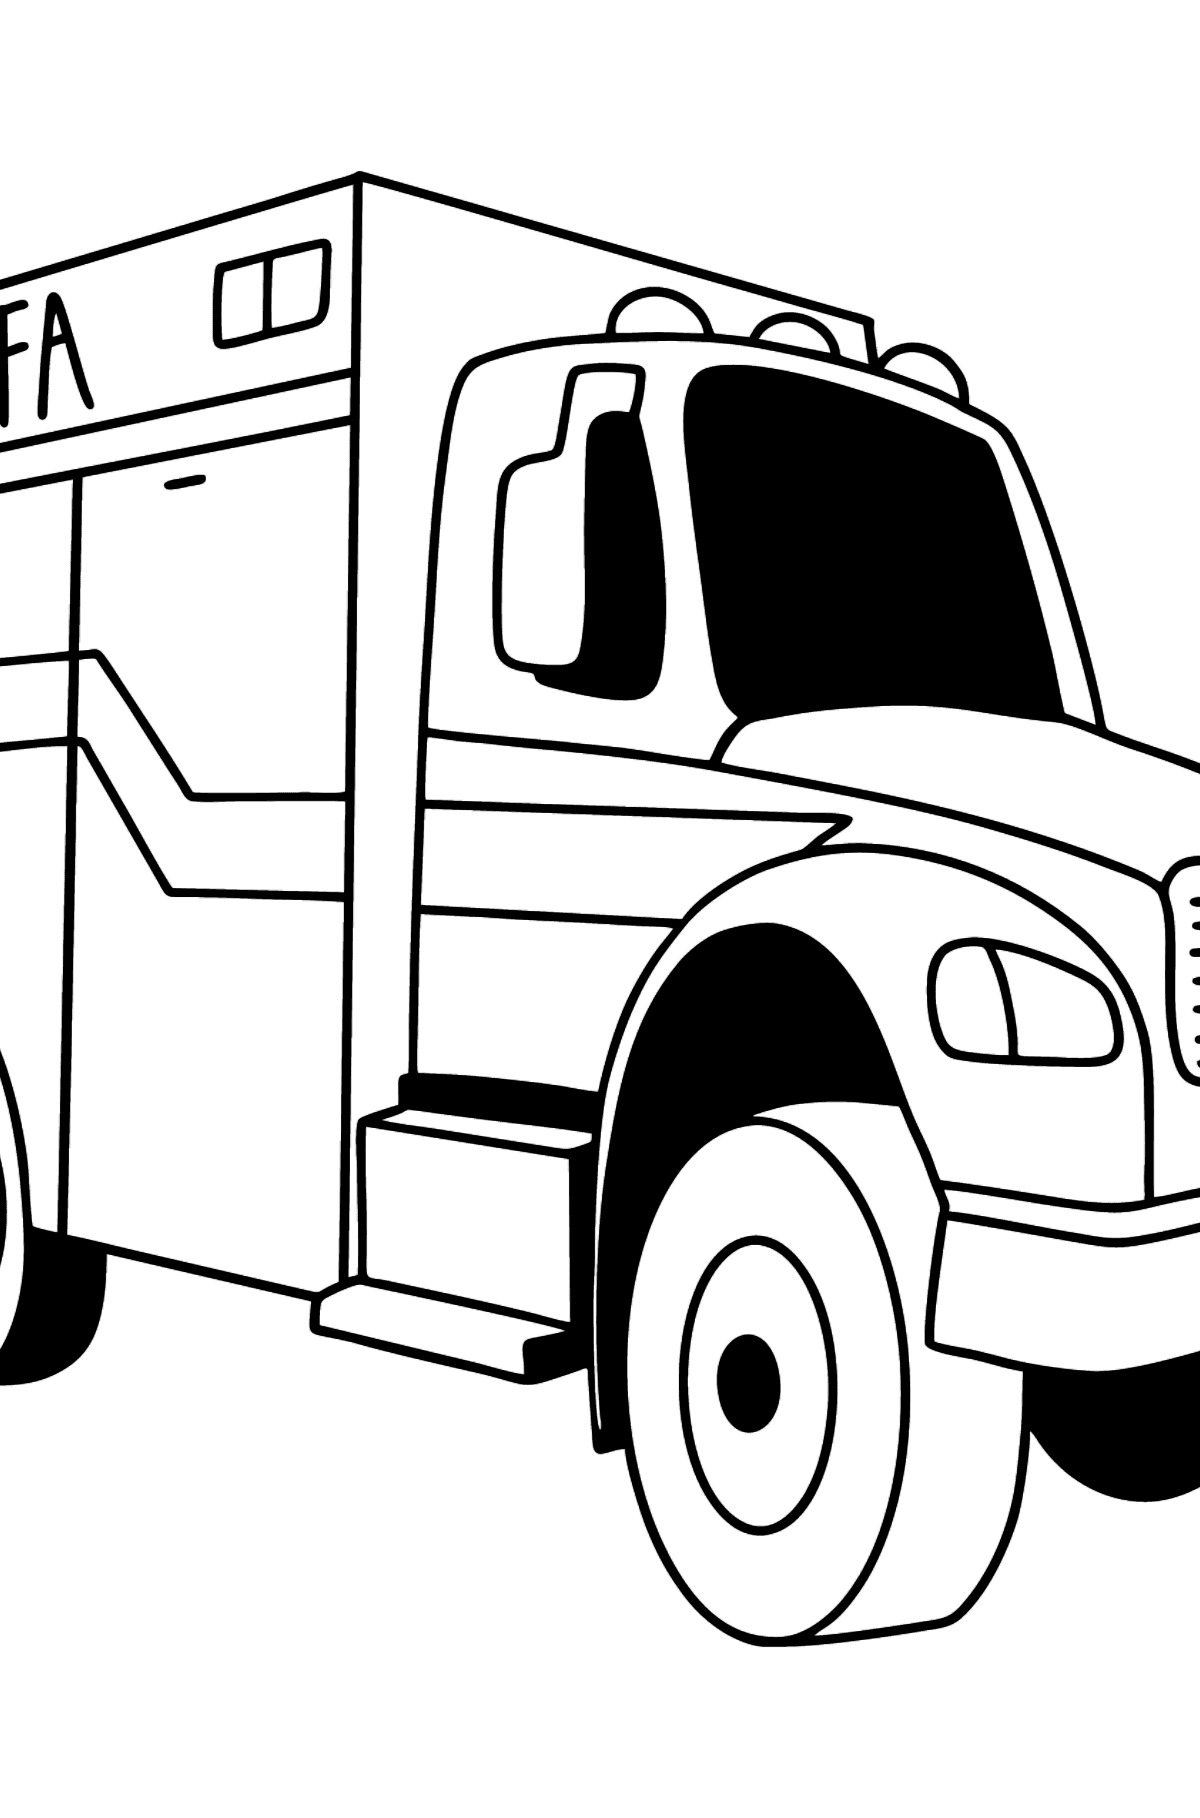 Fire Truck in Argentina coloring page - Coloring Pages for Kids